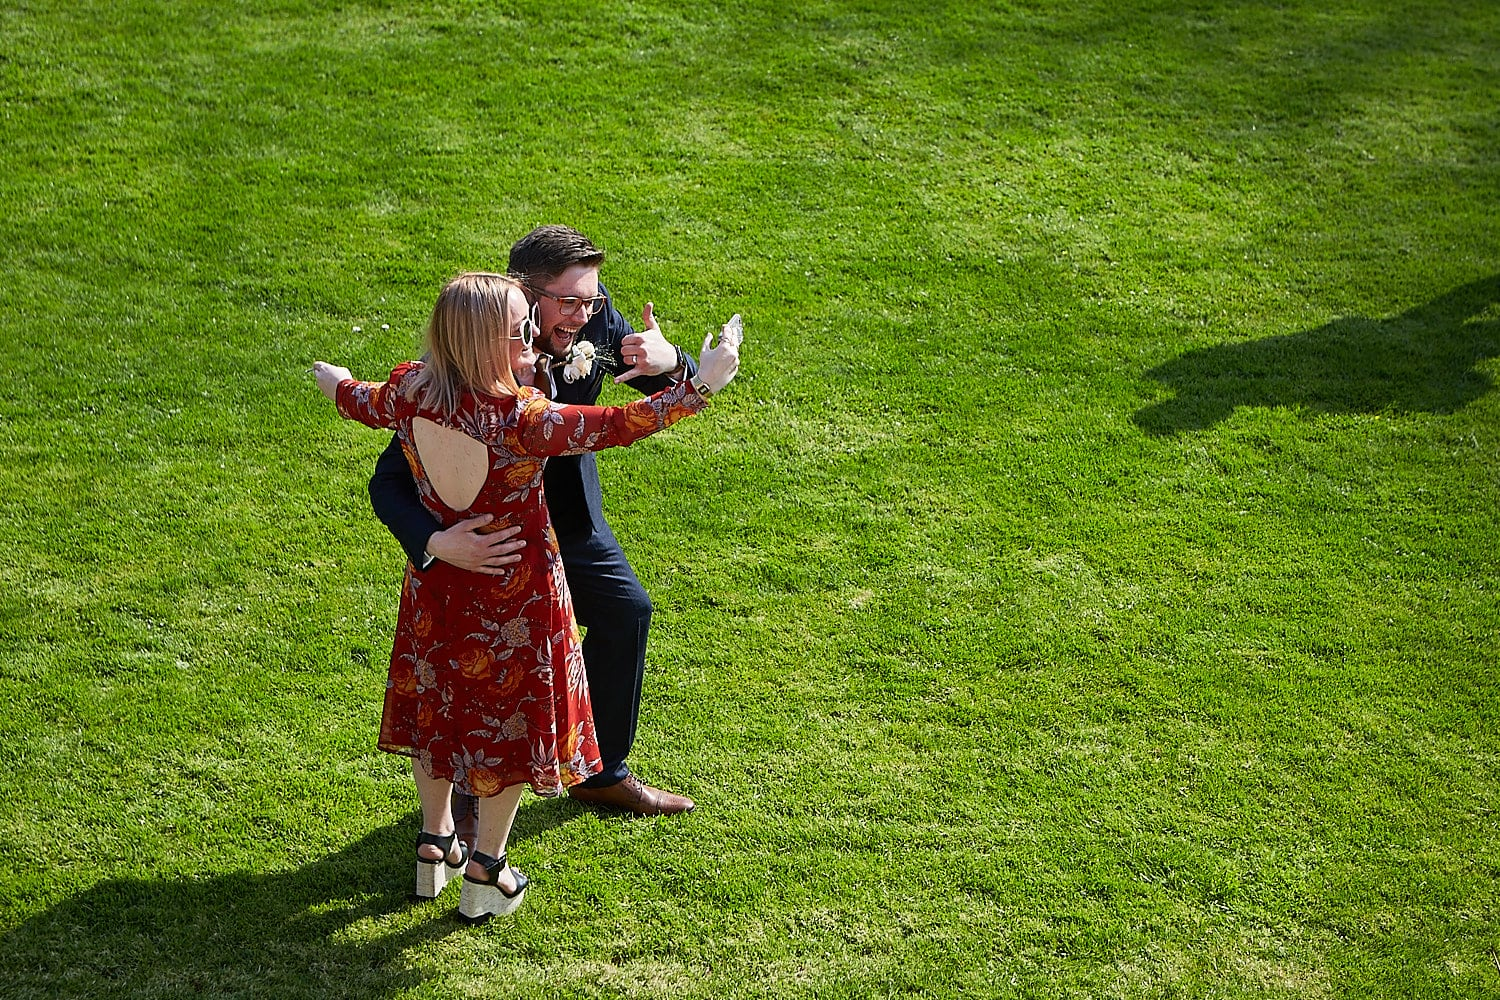 A groom and his friend pose for a selfie outdoors